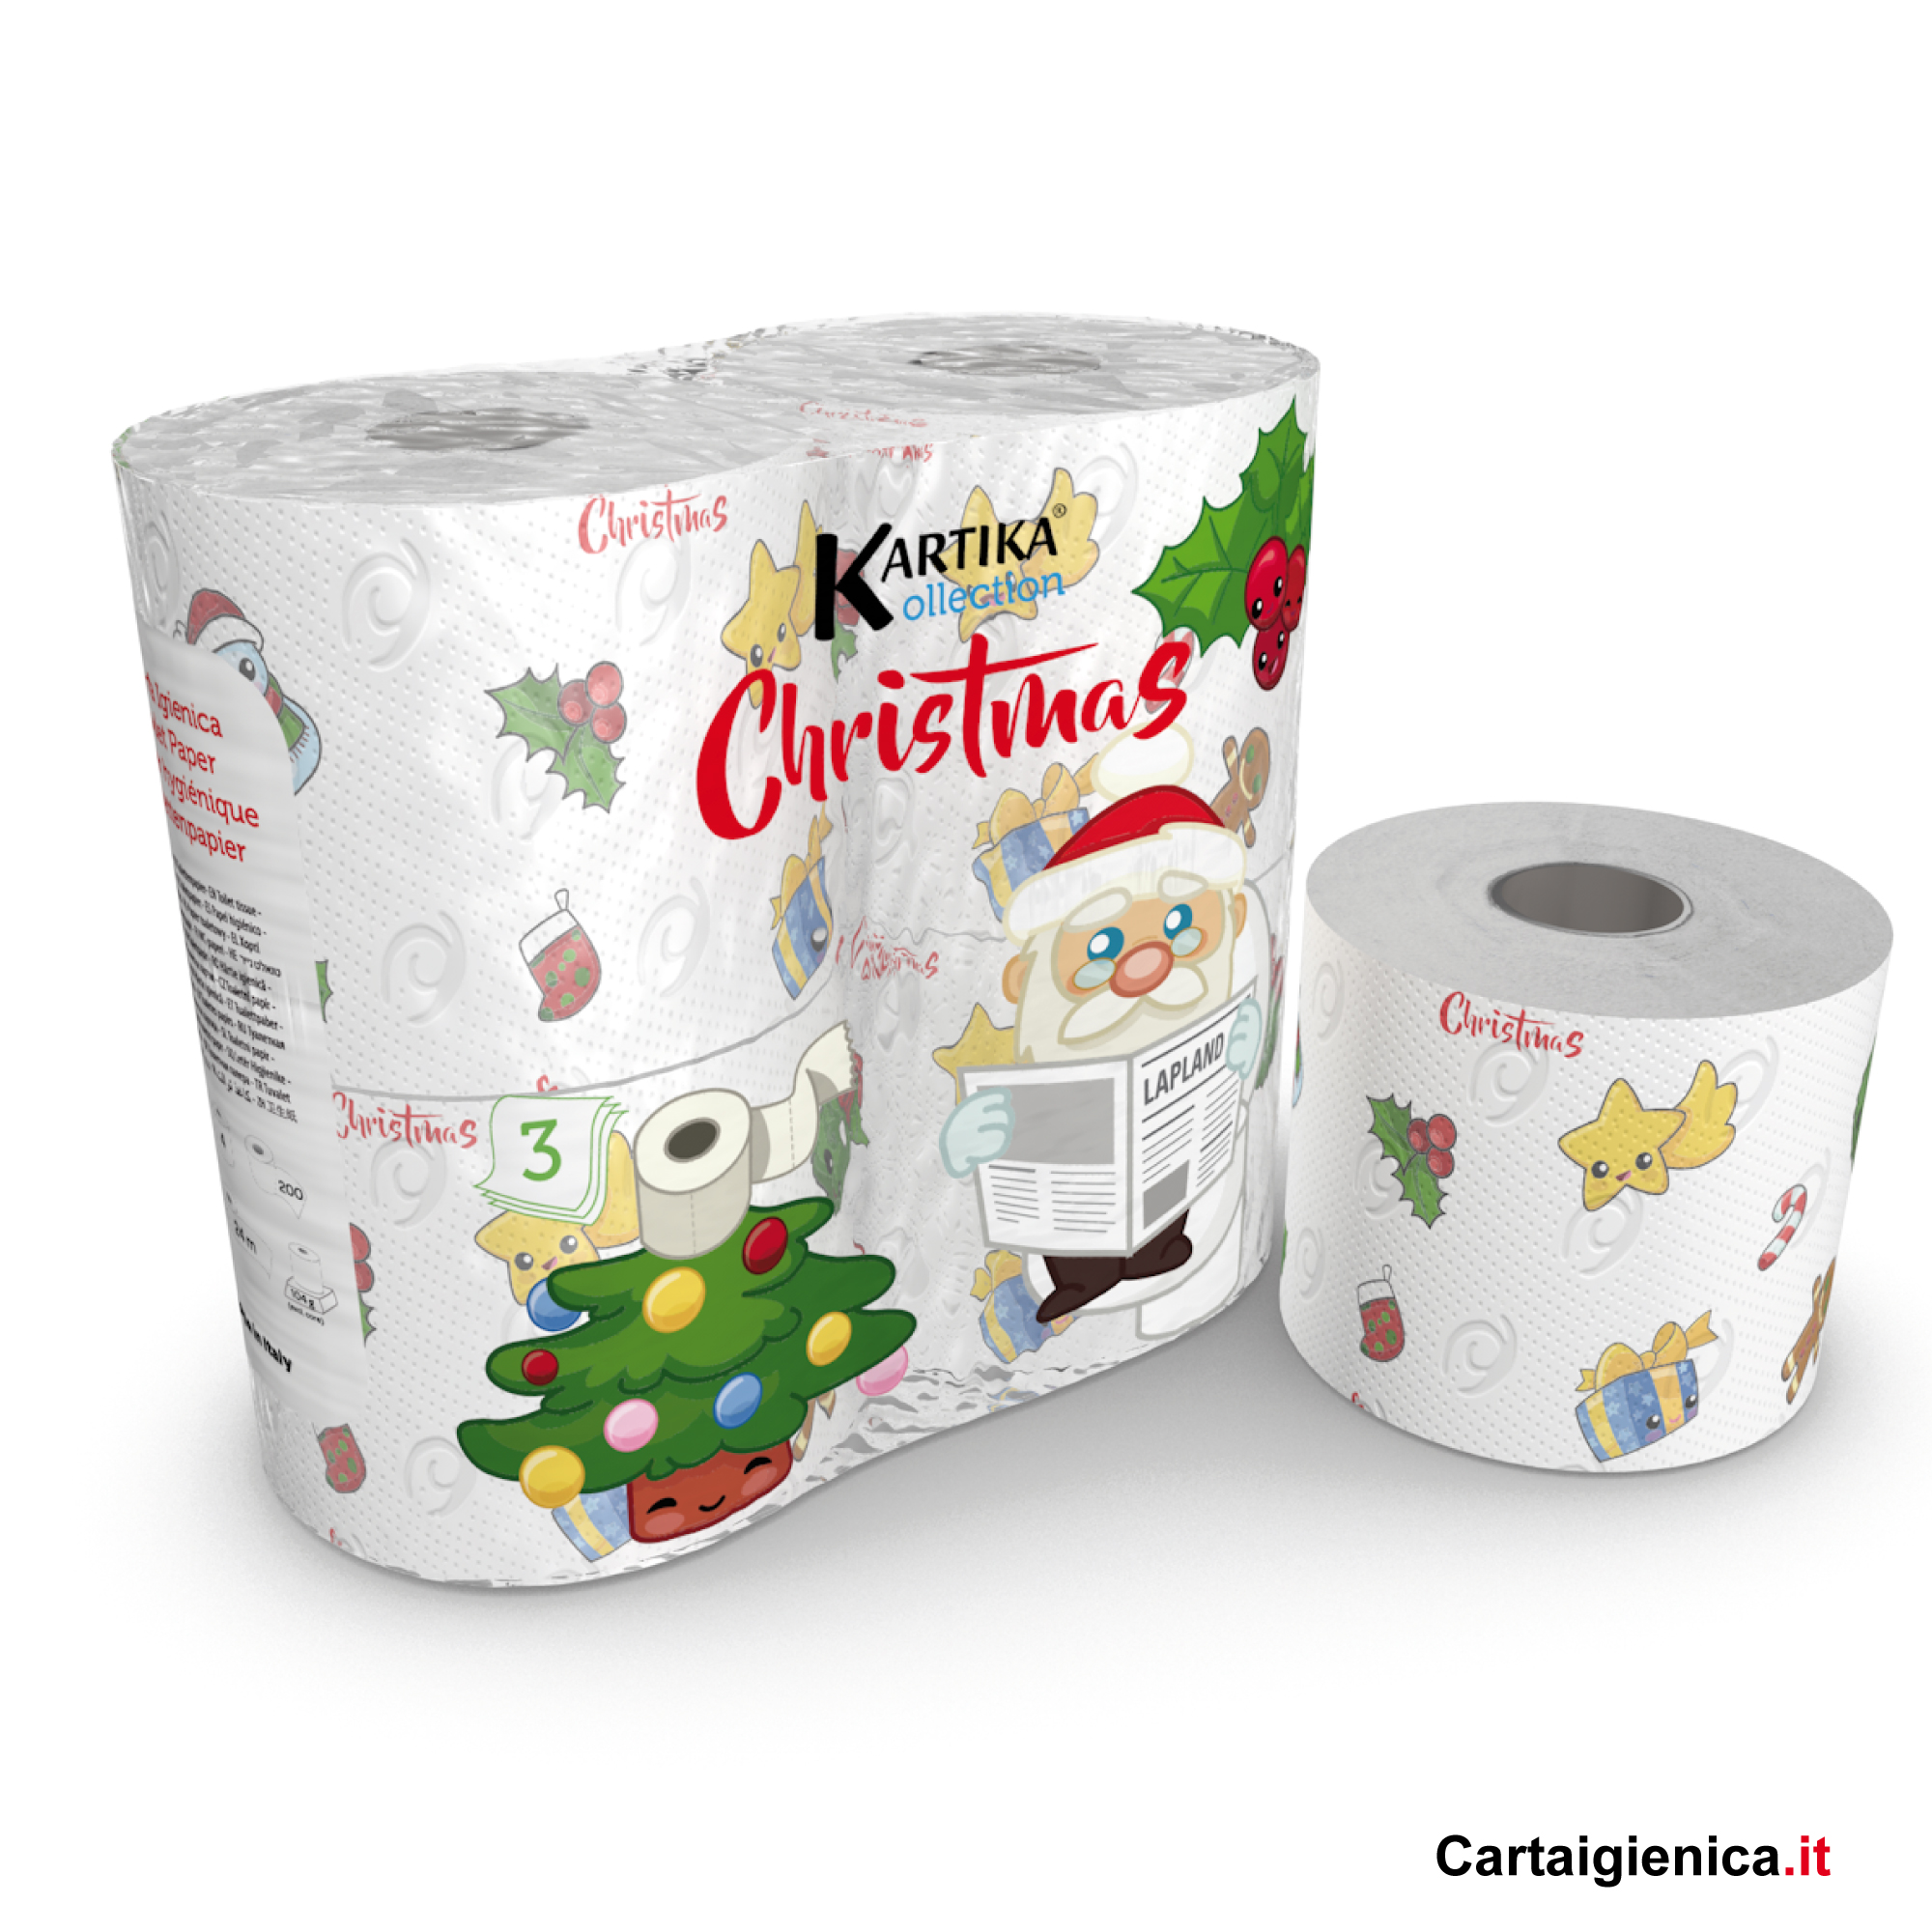 carta igienica natale kartika stile kollection bambini colorata idea regalo